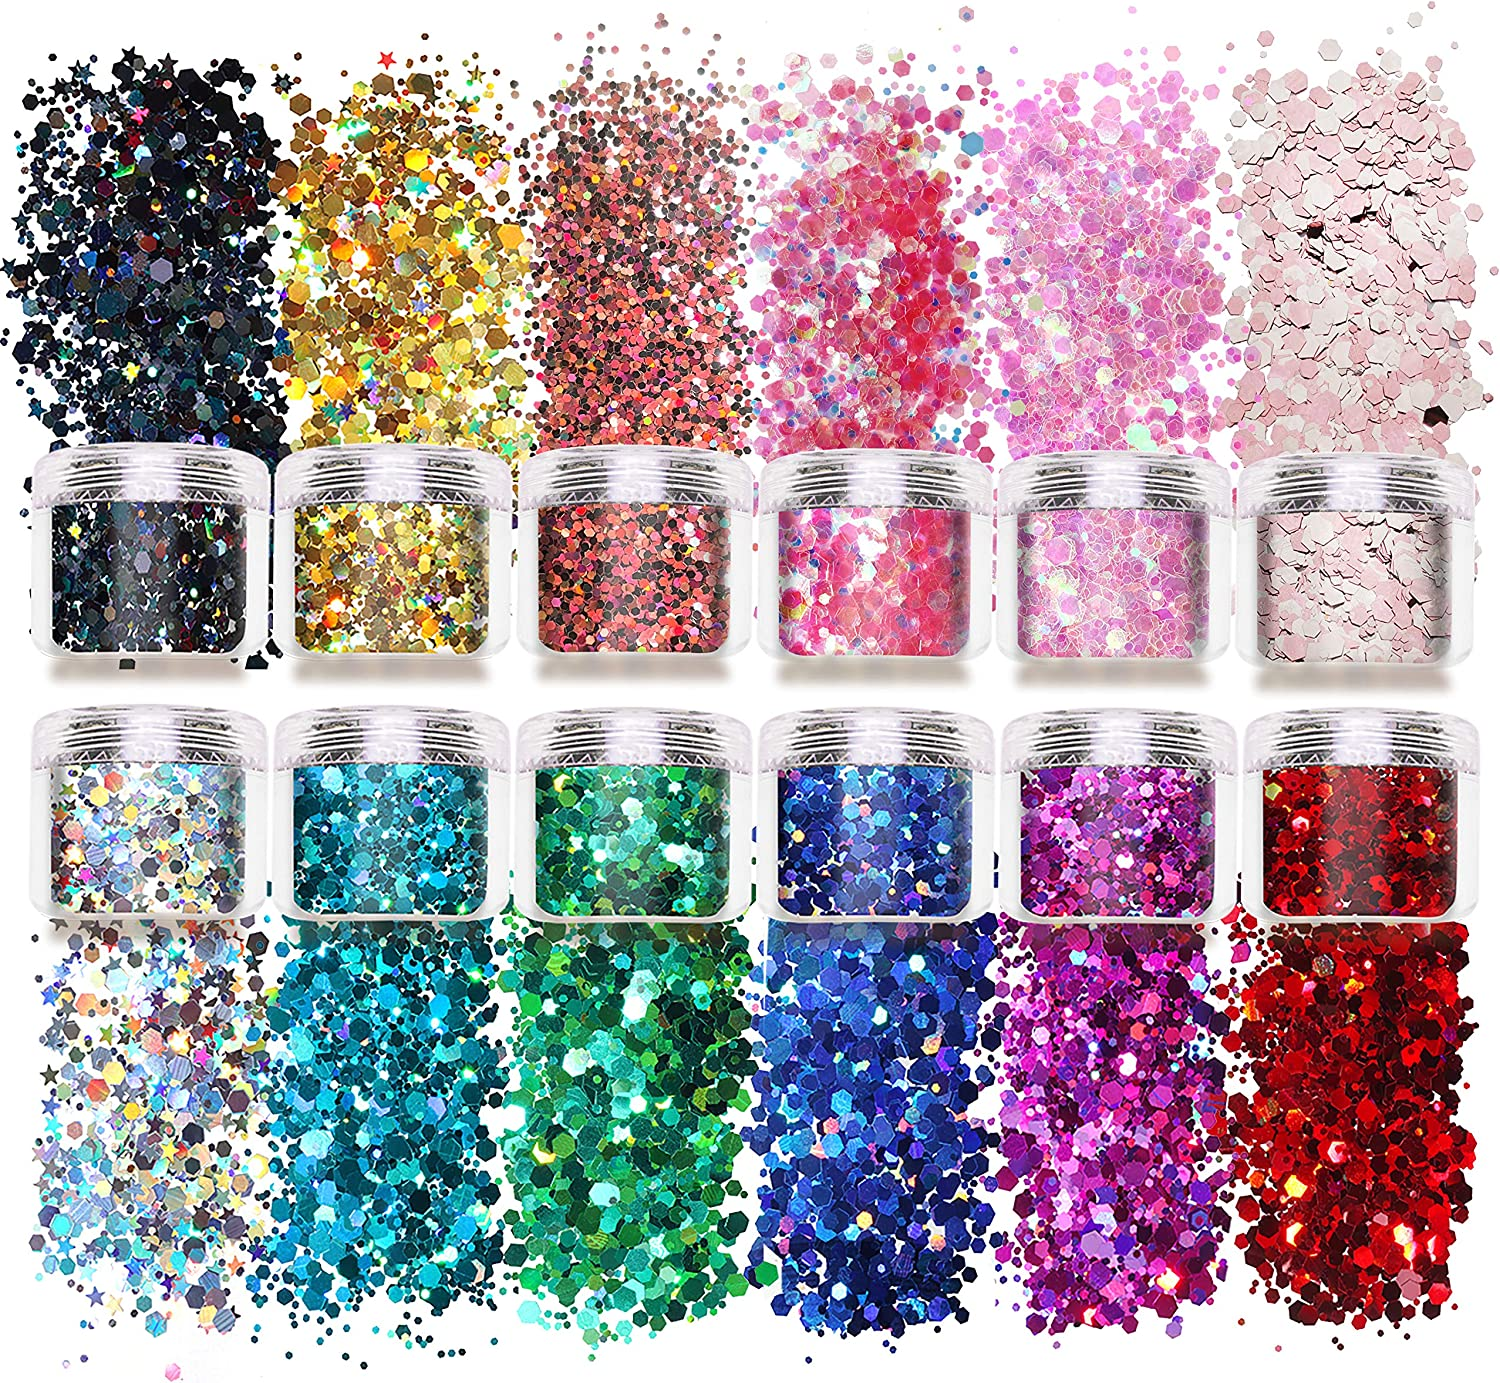 Laza 12 Color Glitter Body Art Acrylic Nails Powder Mixed Polish Chunky Sequins Iridescent Flakes Ultra-Thin Paillette Sparkles Set Tips 120g for Cosmetic Festival Arts Face Eyes Body Hair - Star : Beauty & Personal Care